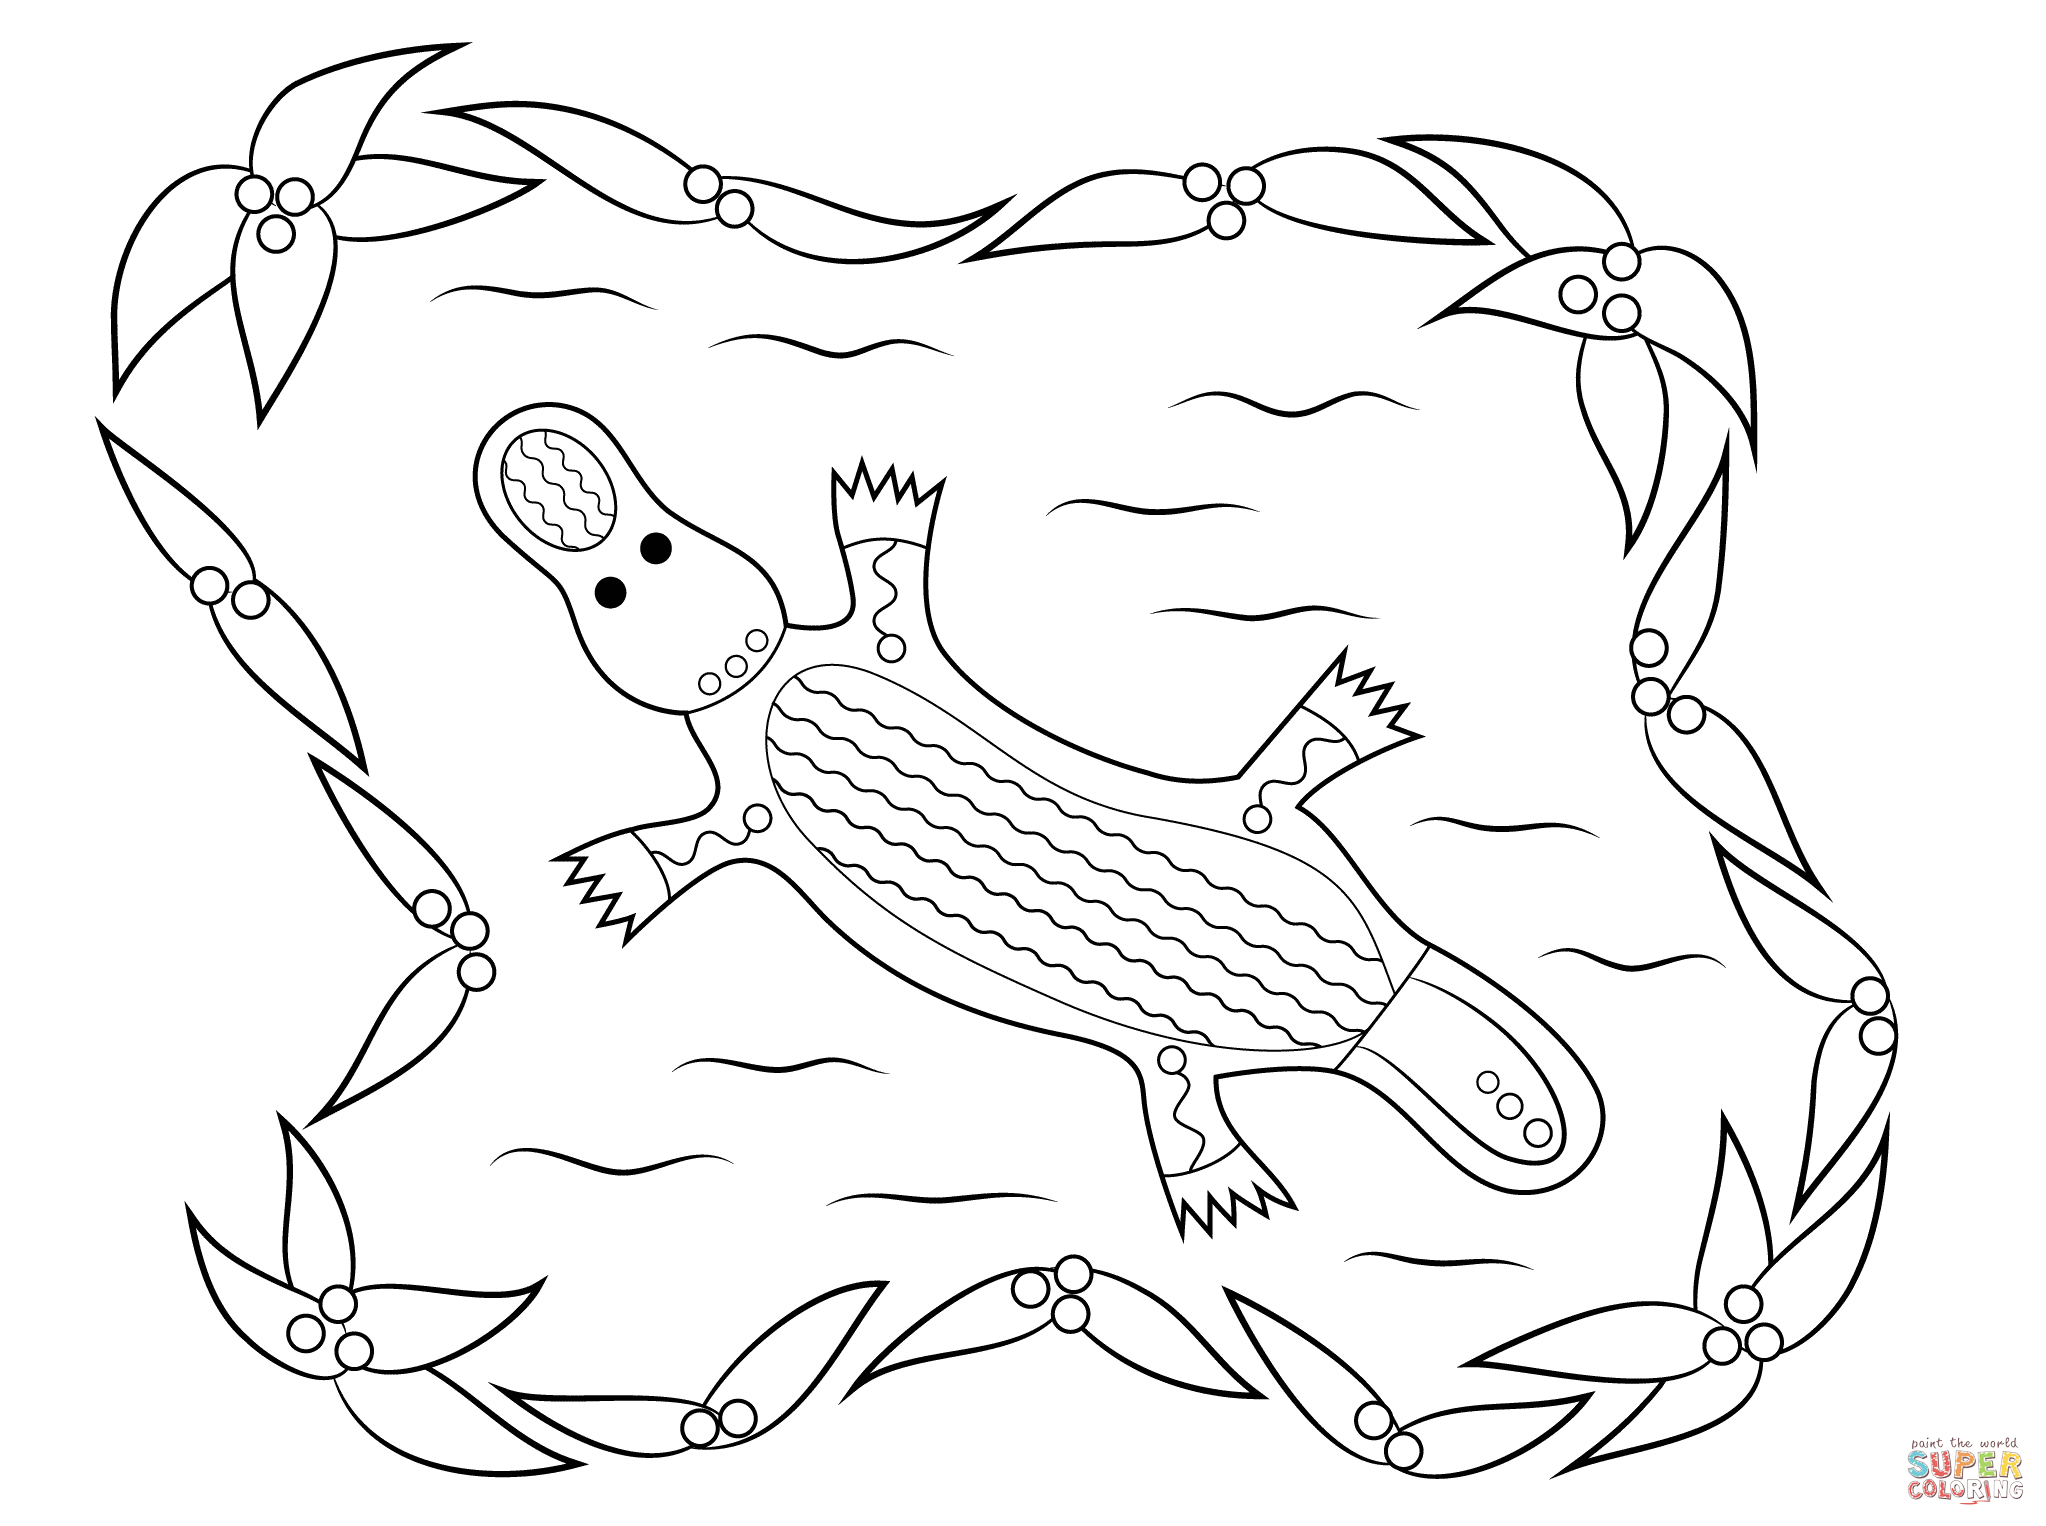 Aboriginal Kangaroo Art Coloring Page Coloring Pages